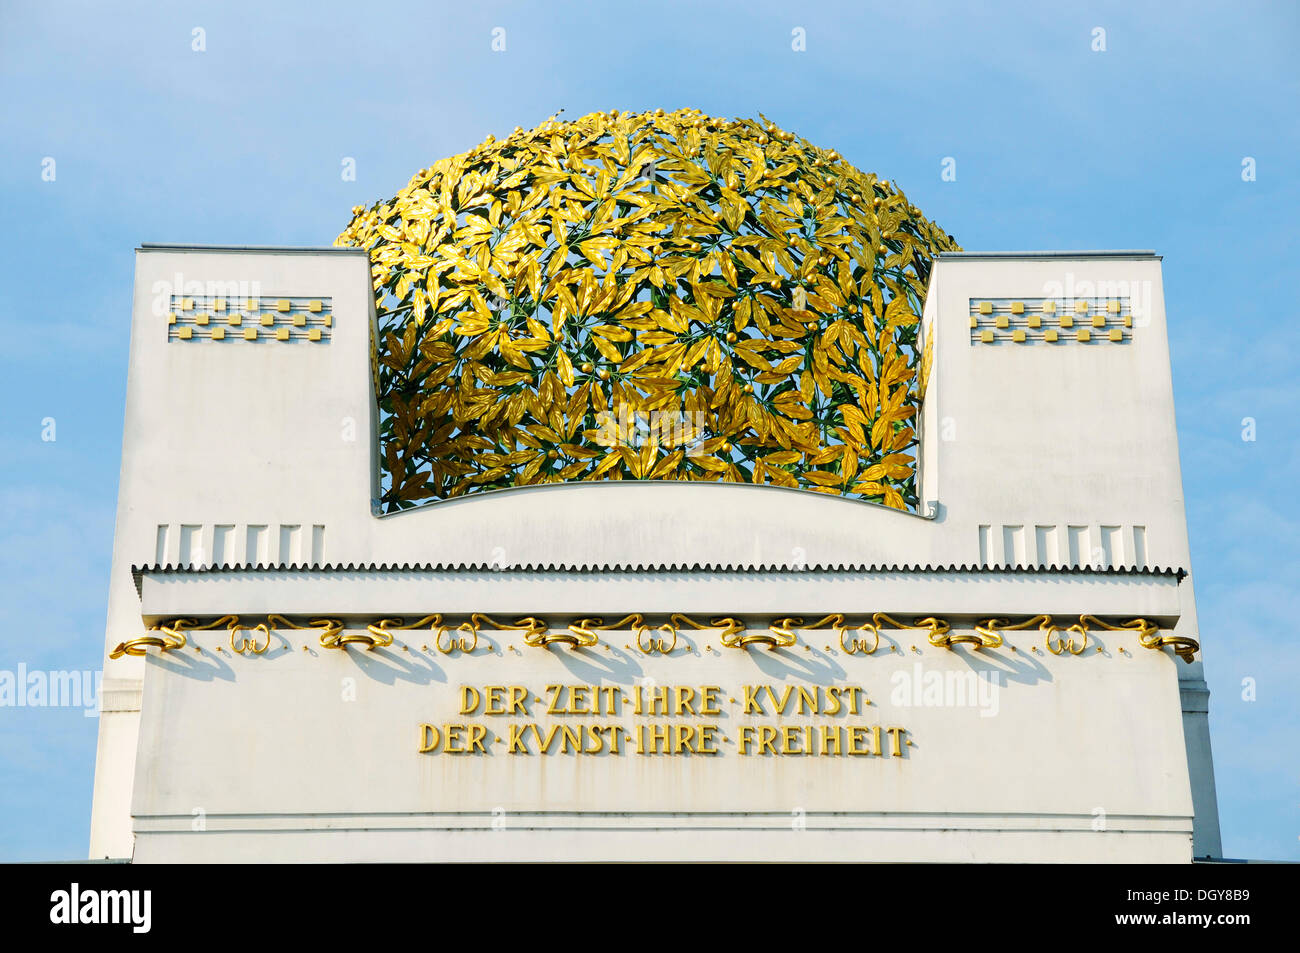 Dome of the Secession with golden leaves, lettering Der Zeit ihre Kunst, Der Kunst ihre Freiheit, German for The age its art - Stock Image